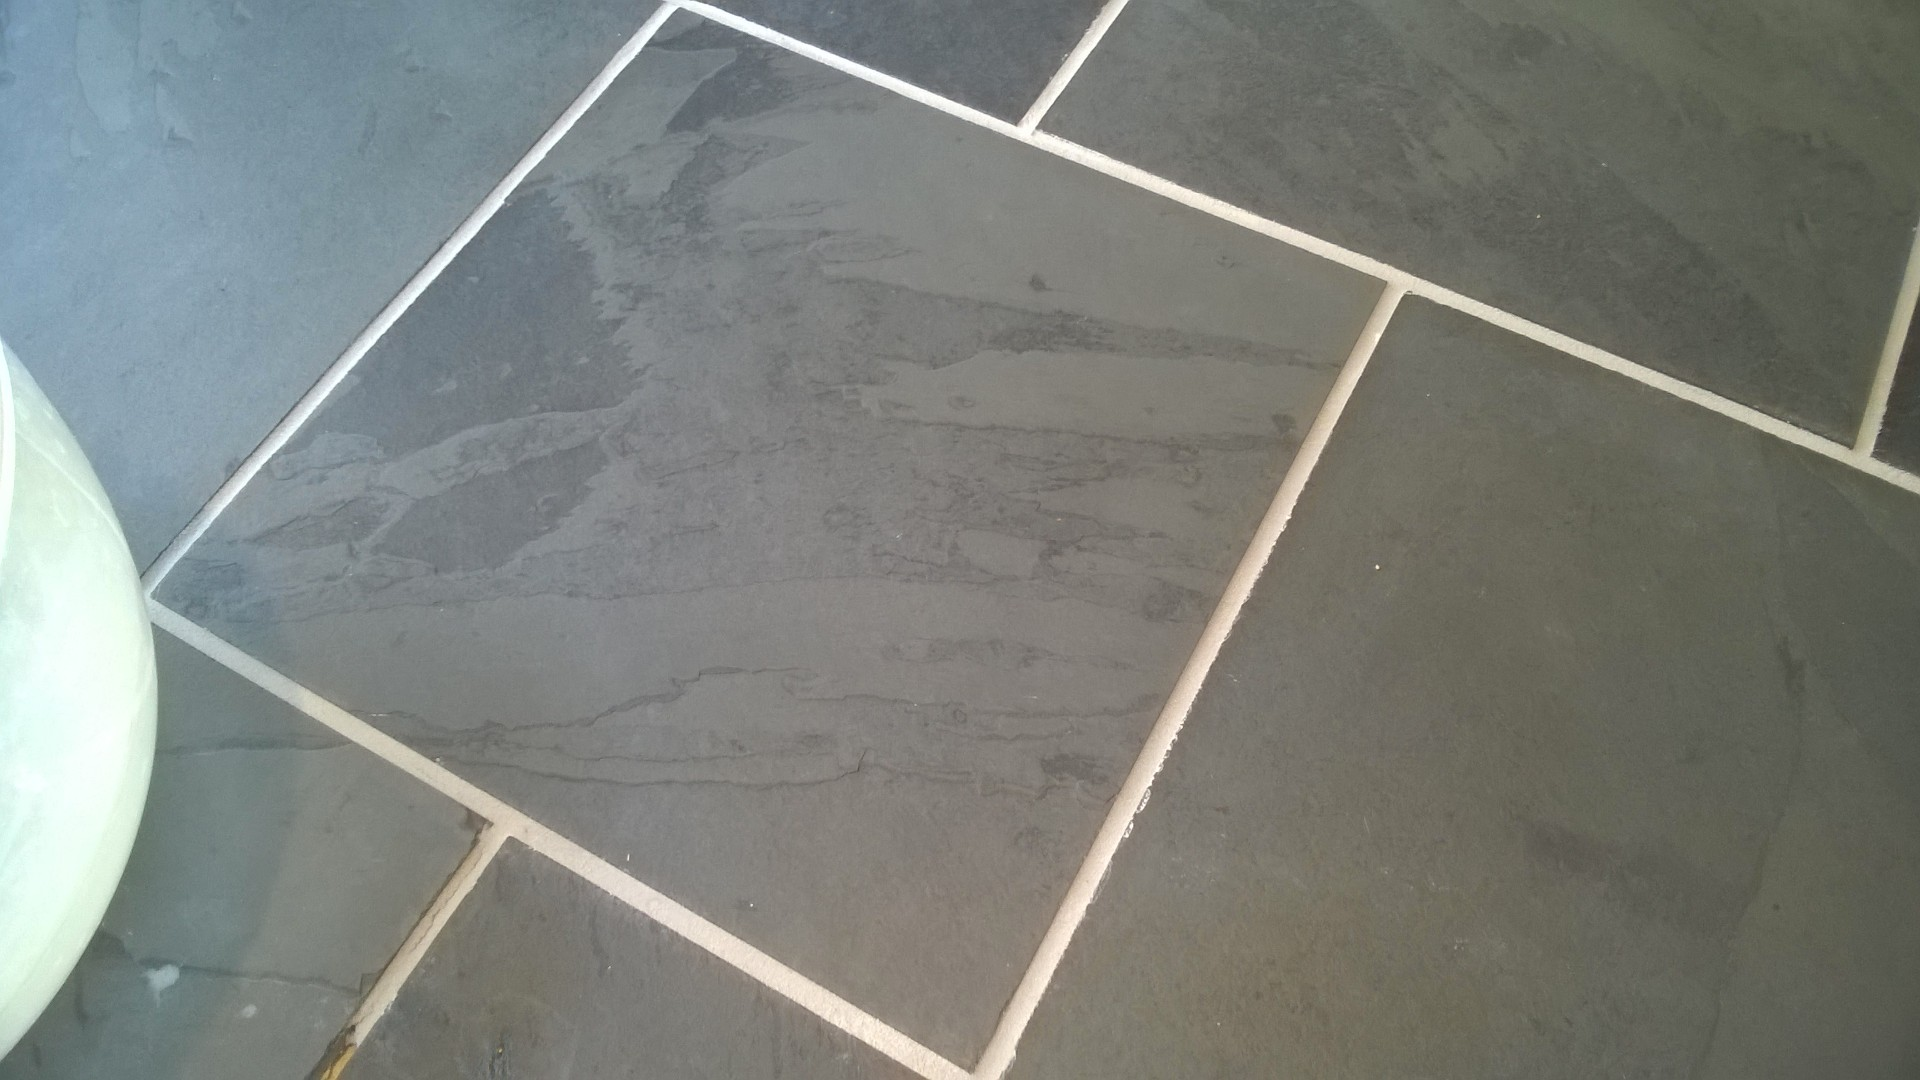 Best way to remove grout from floor tiles